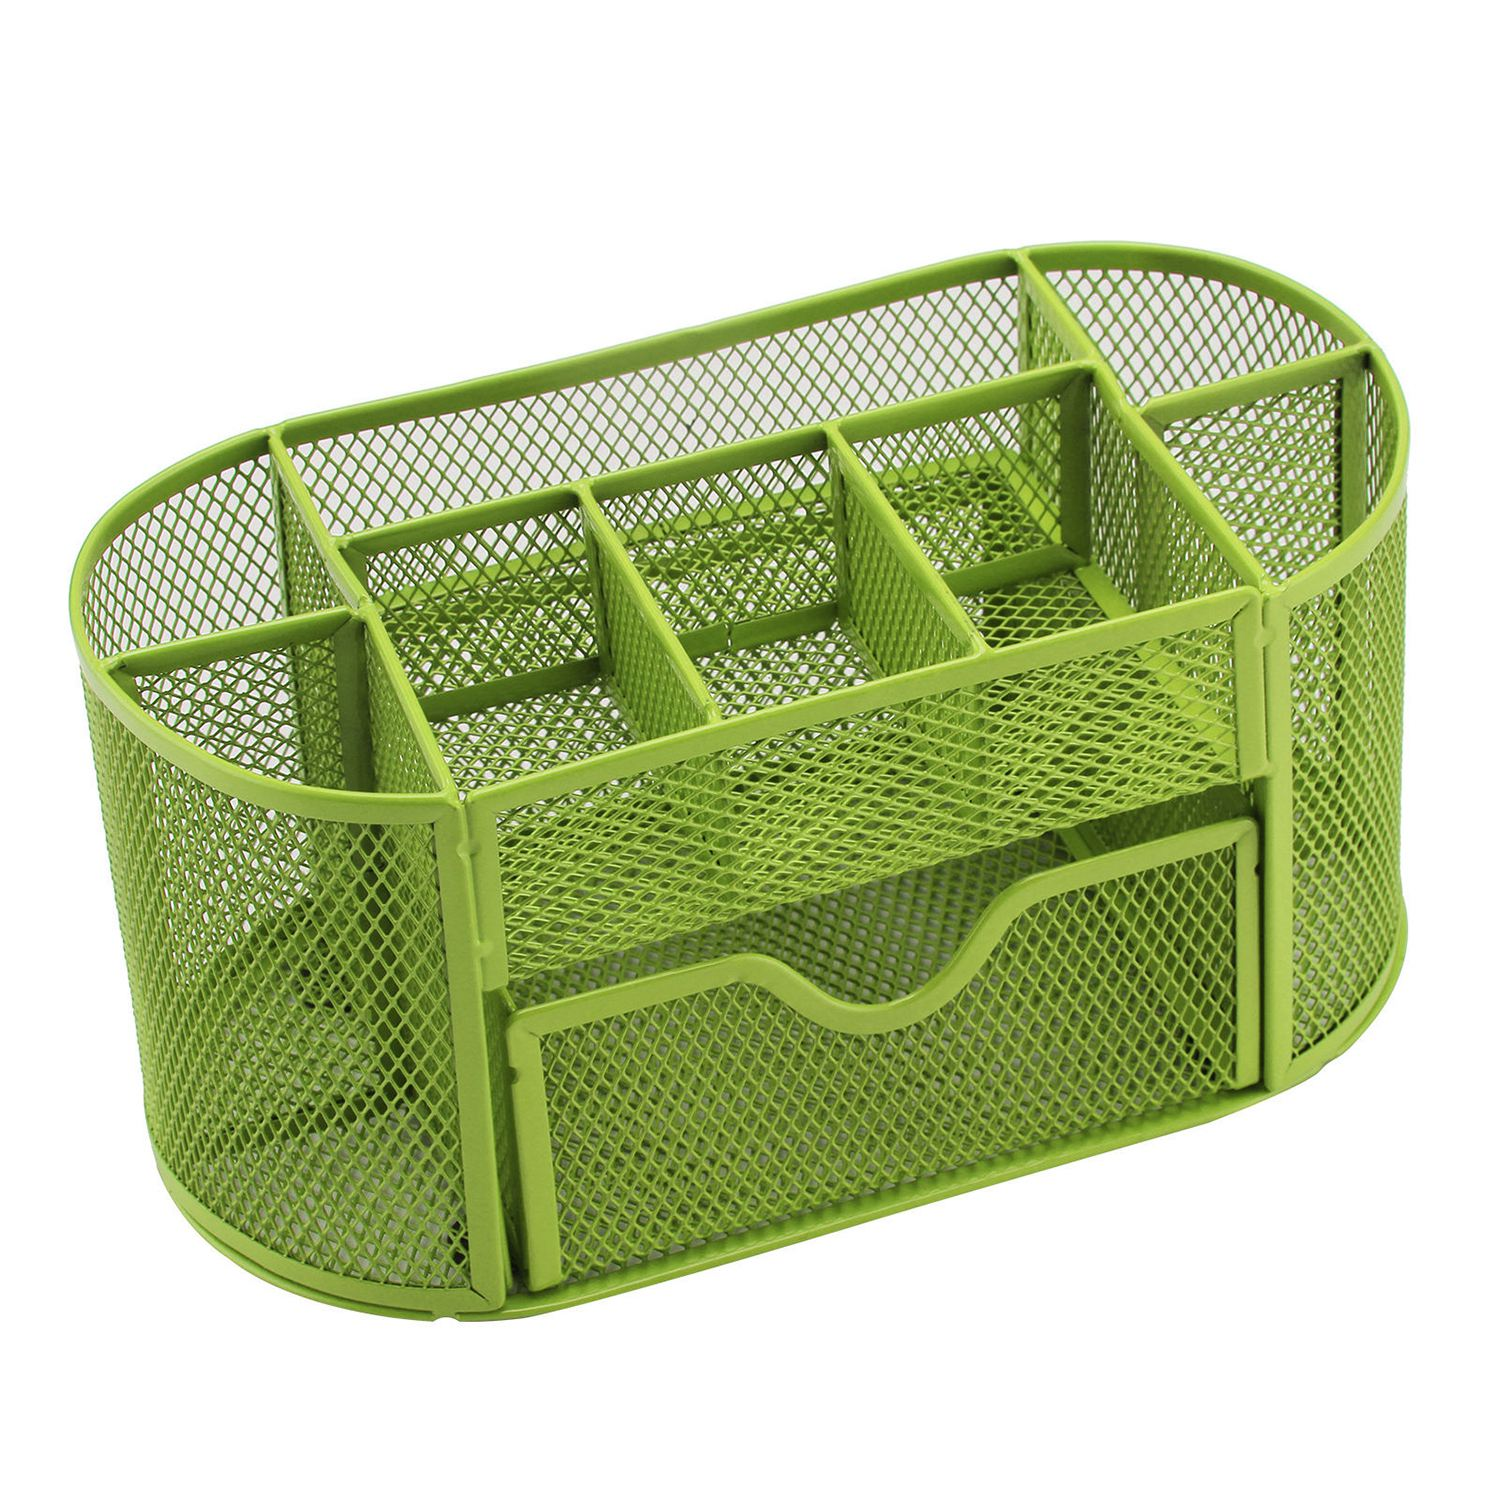 Pen Pencils Mesh Holder Stationery Container Desk Tidy Organiser Office School, Green